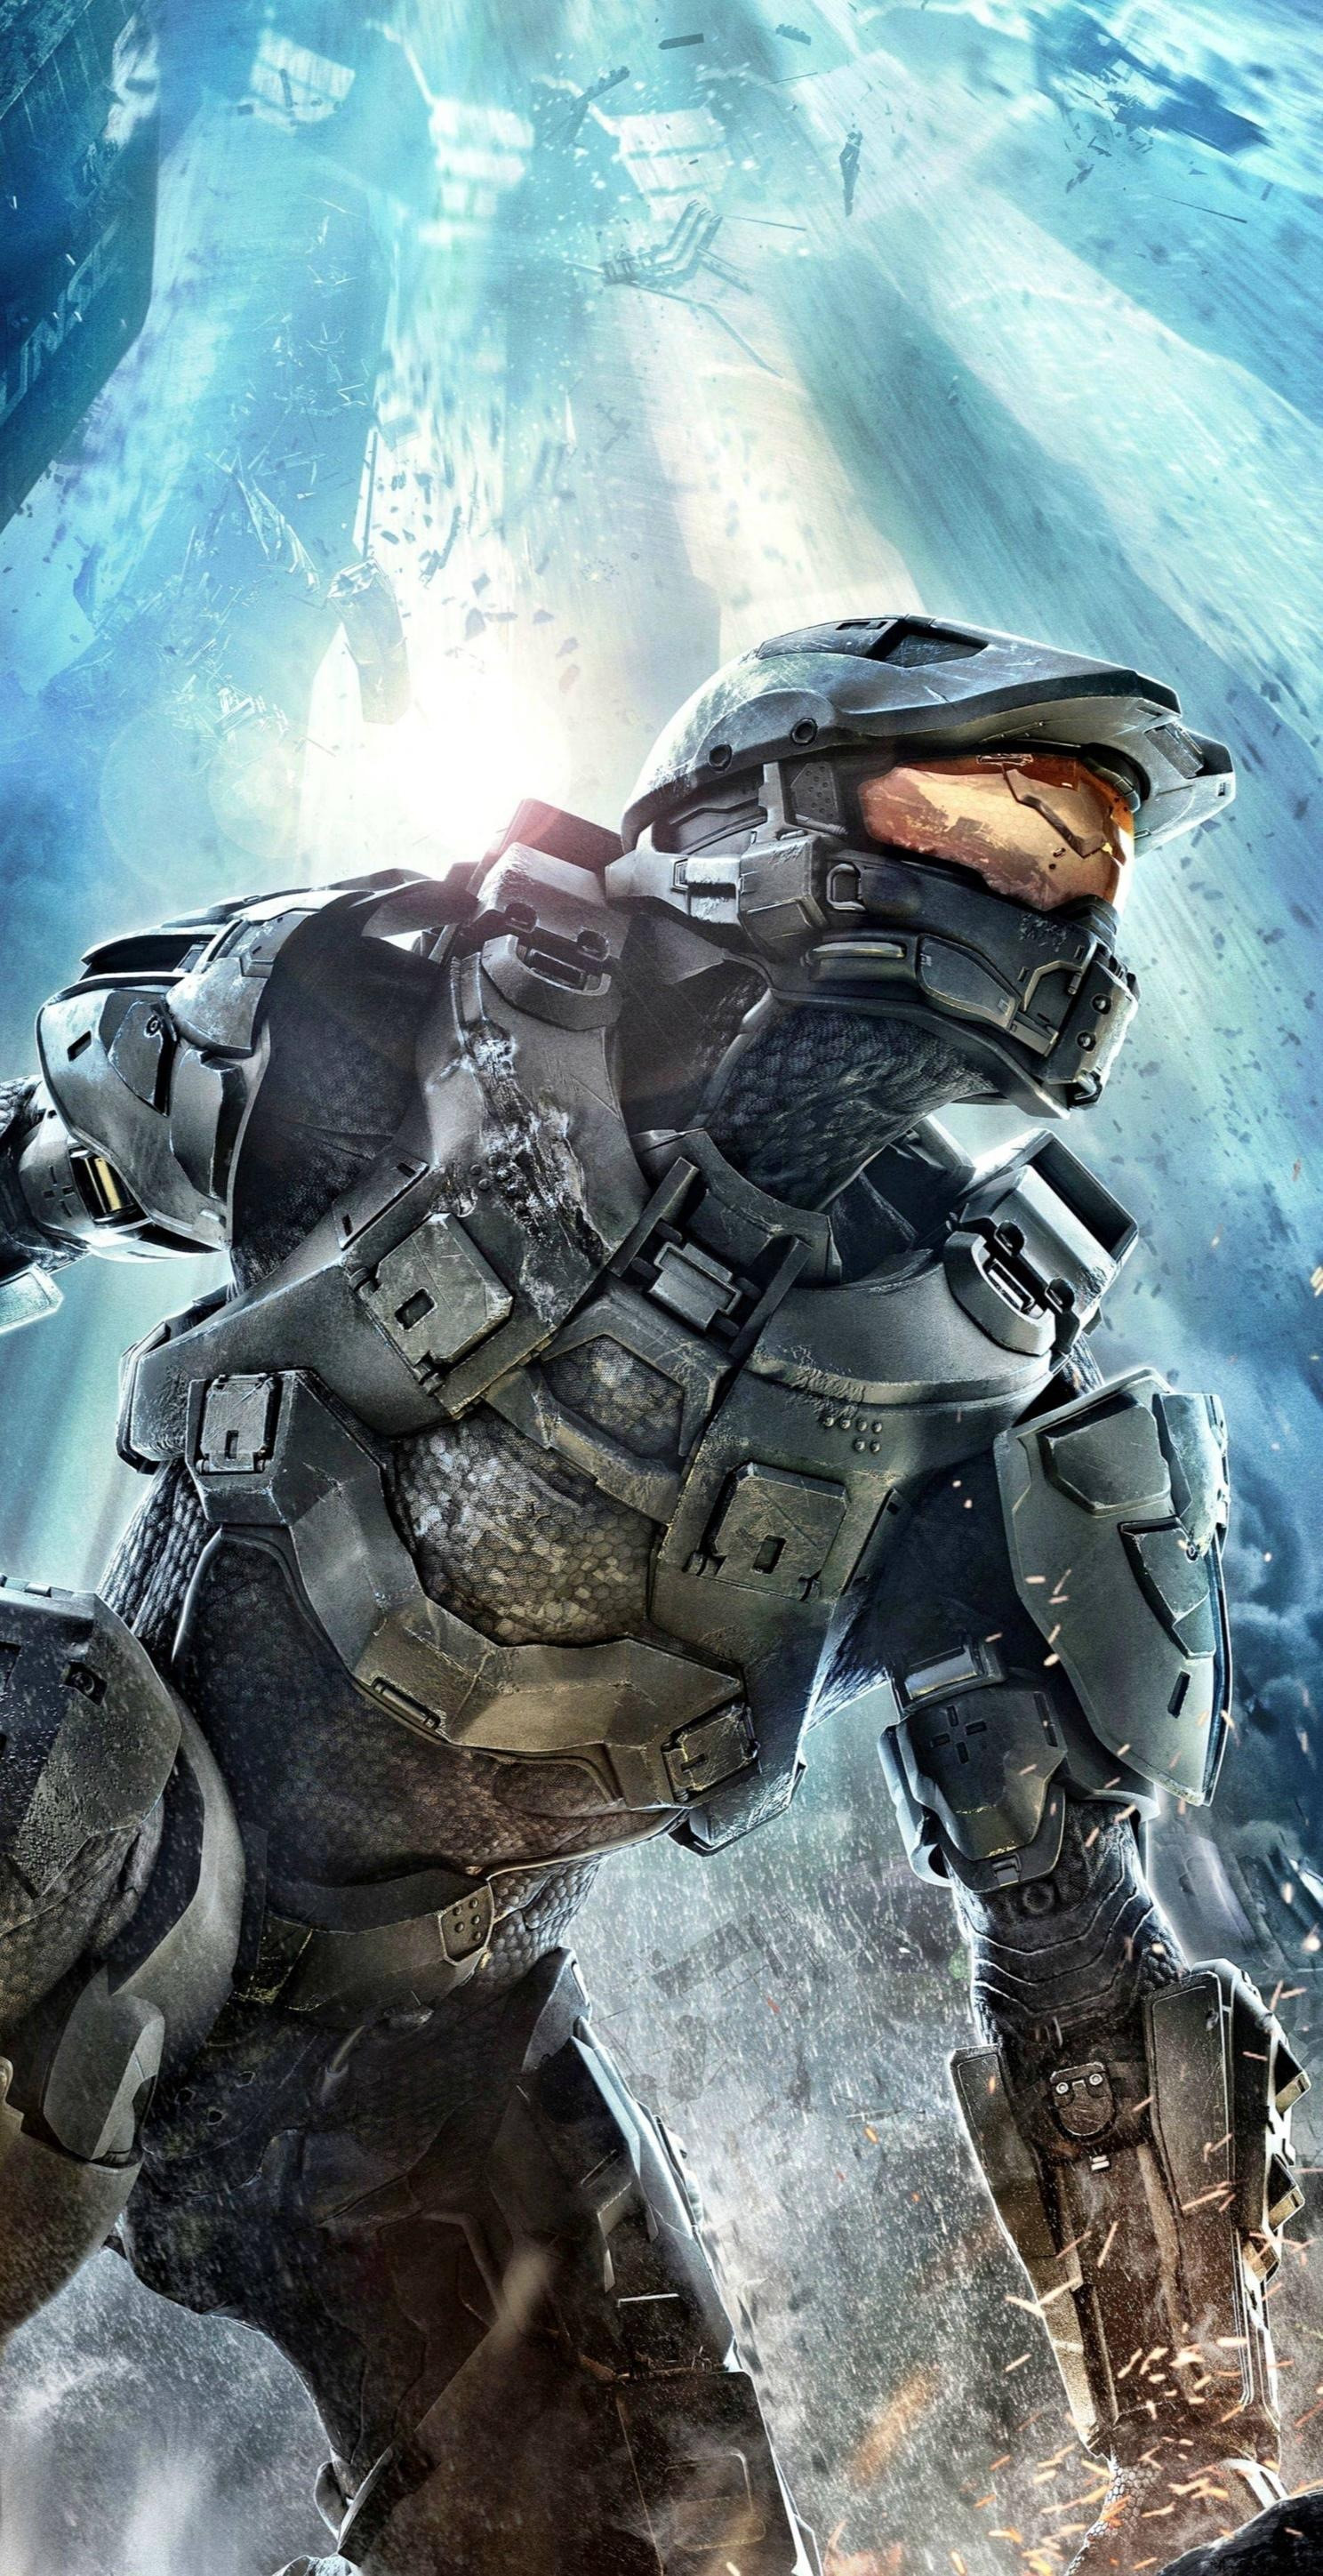 1488x2897 Halo 4 Wallpaper for iPhone 5